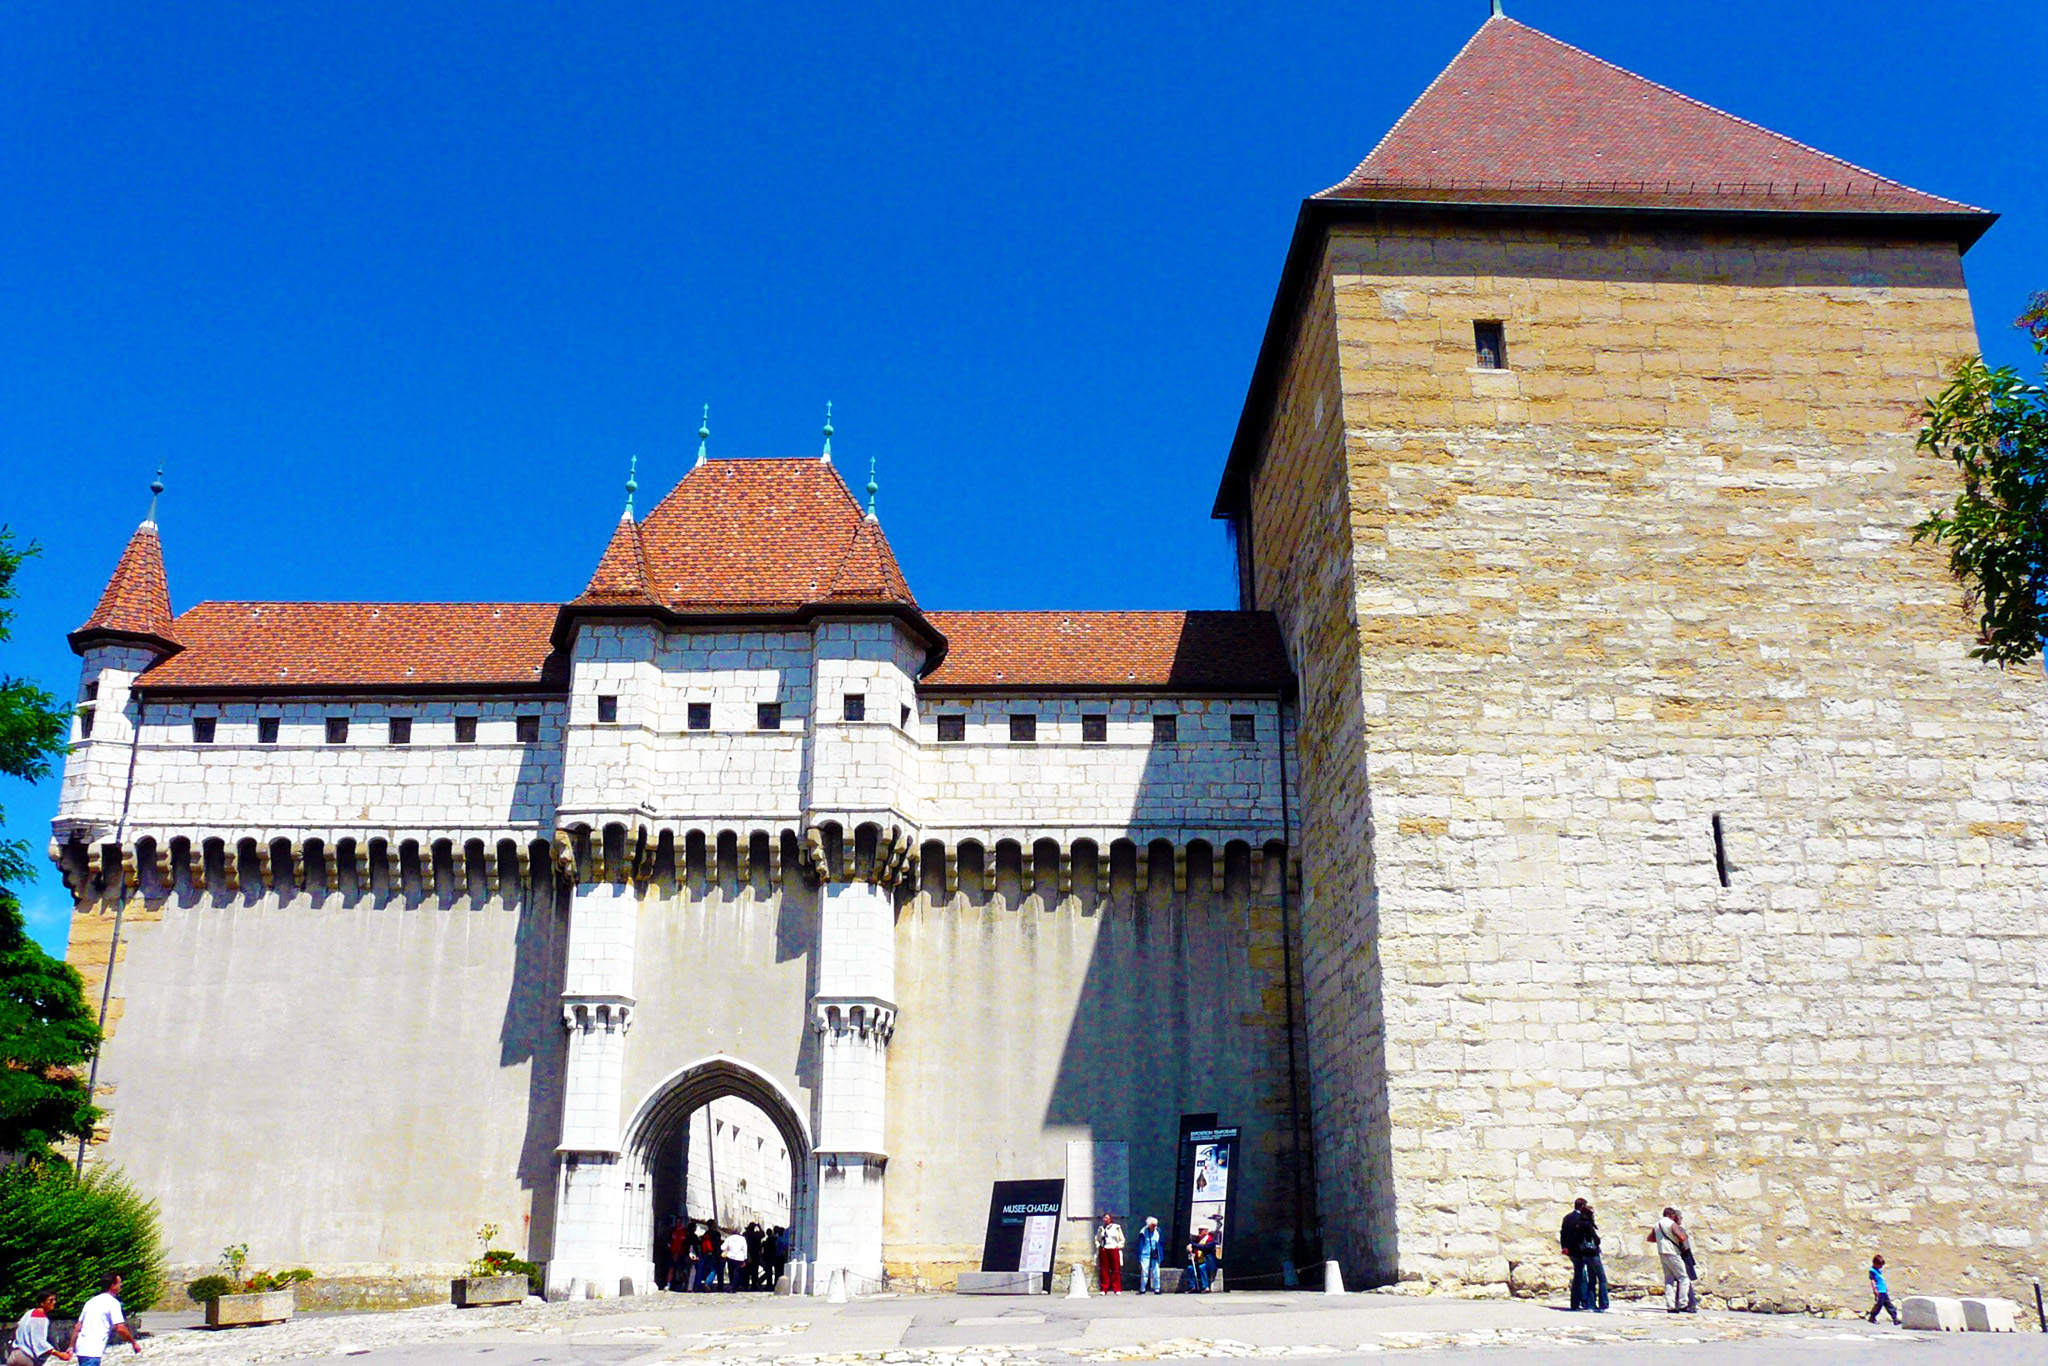 kt_2020_370_Keytours_excursions_Swisstours_annecy_château4_2048_10